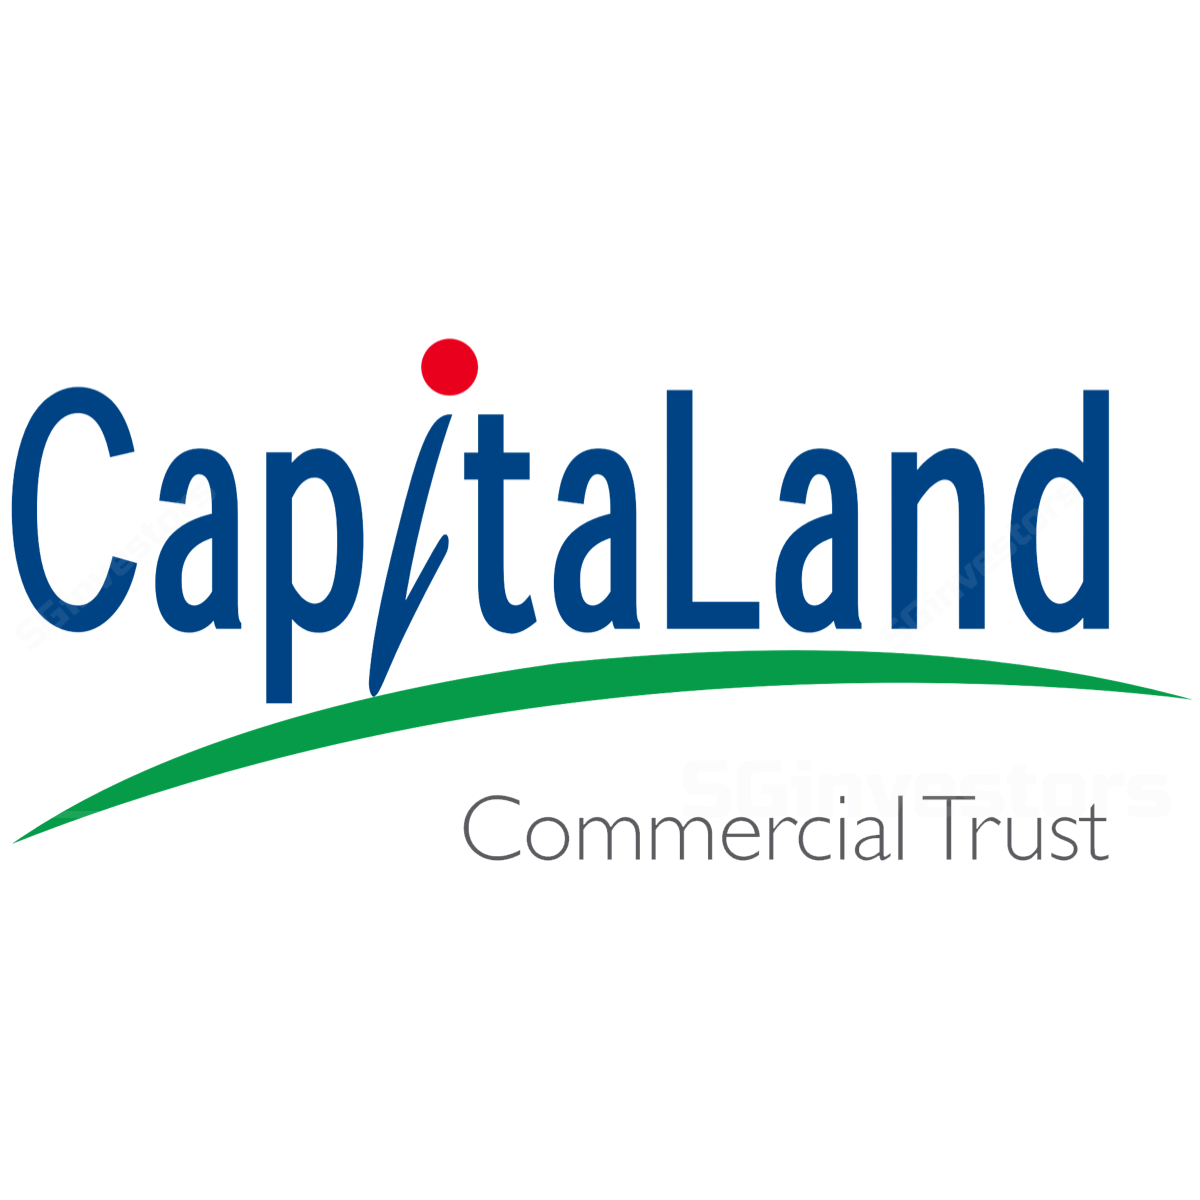 CapitaLand Commercial Trust (CCT SP) - UOB Kay Hian 2018-05-18: Expanding Overseas The Natural Next Step